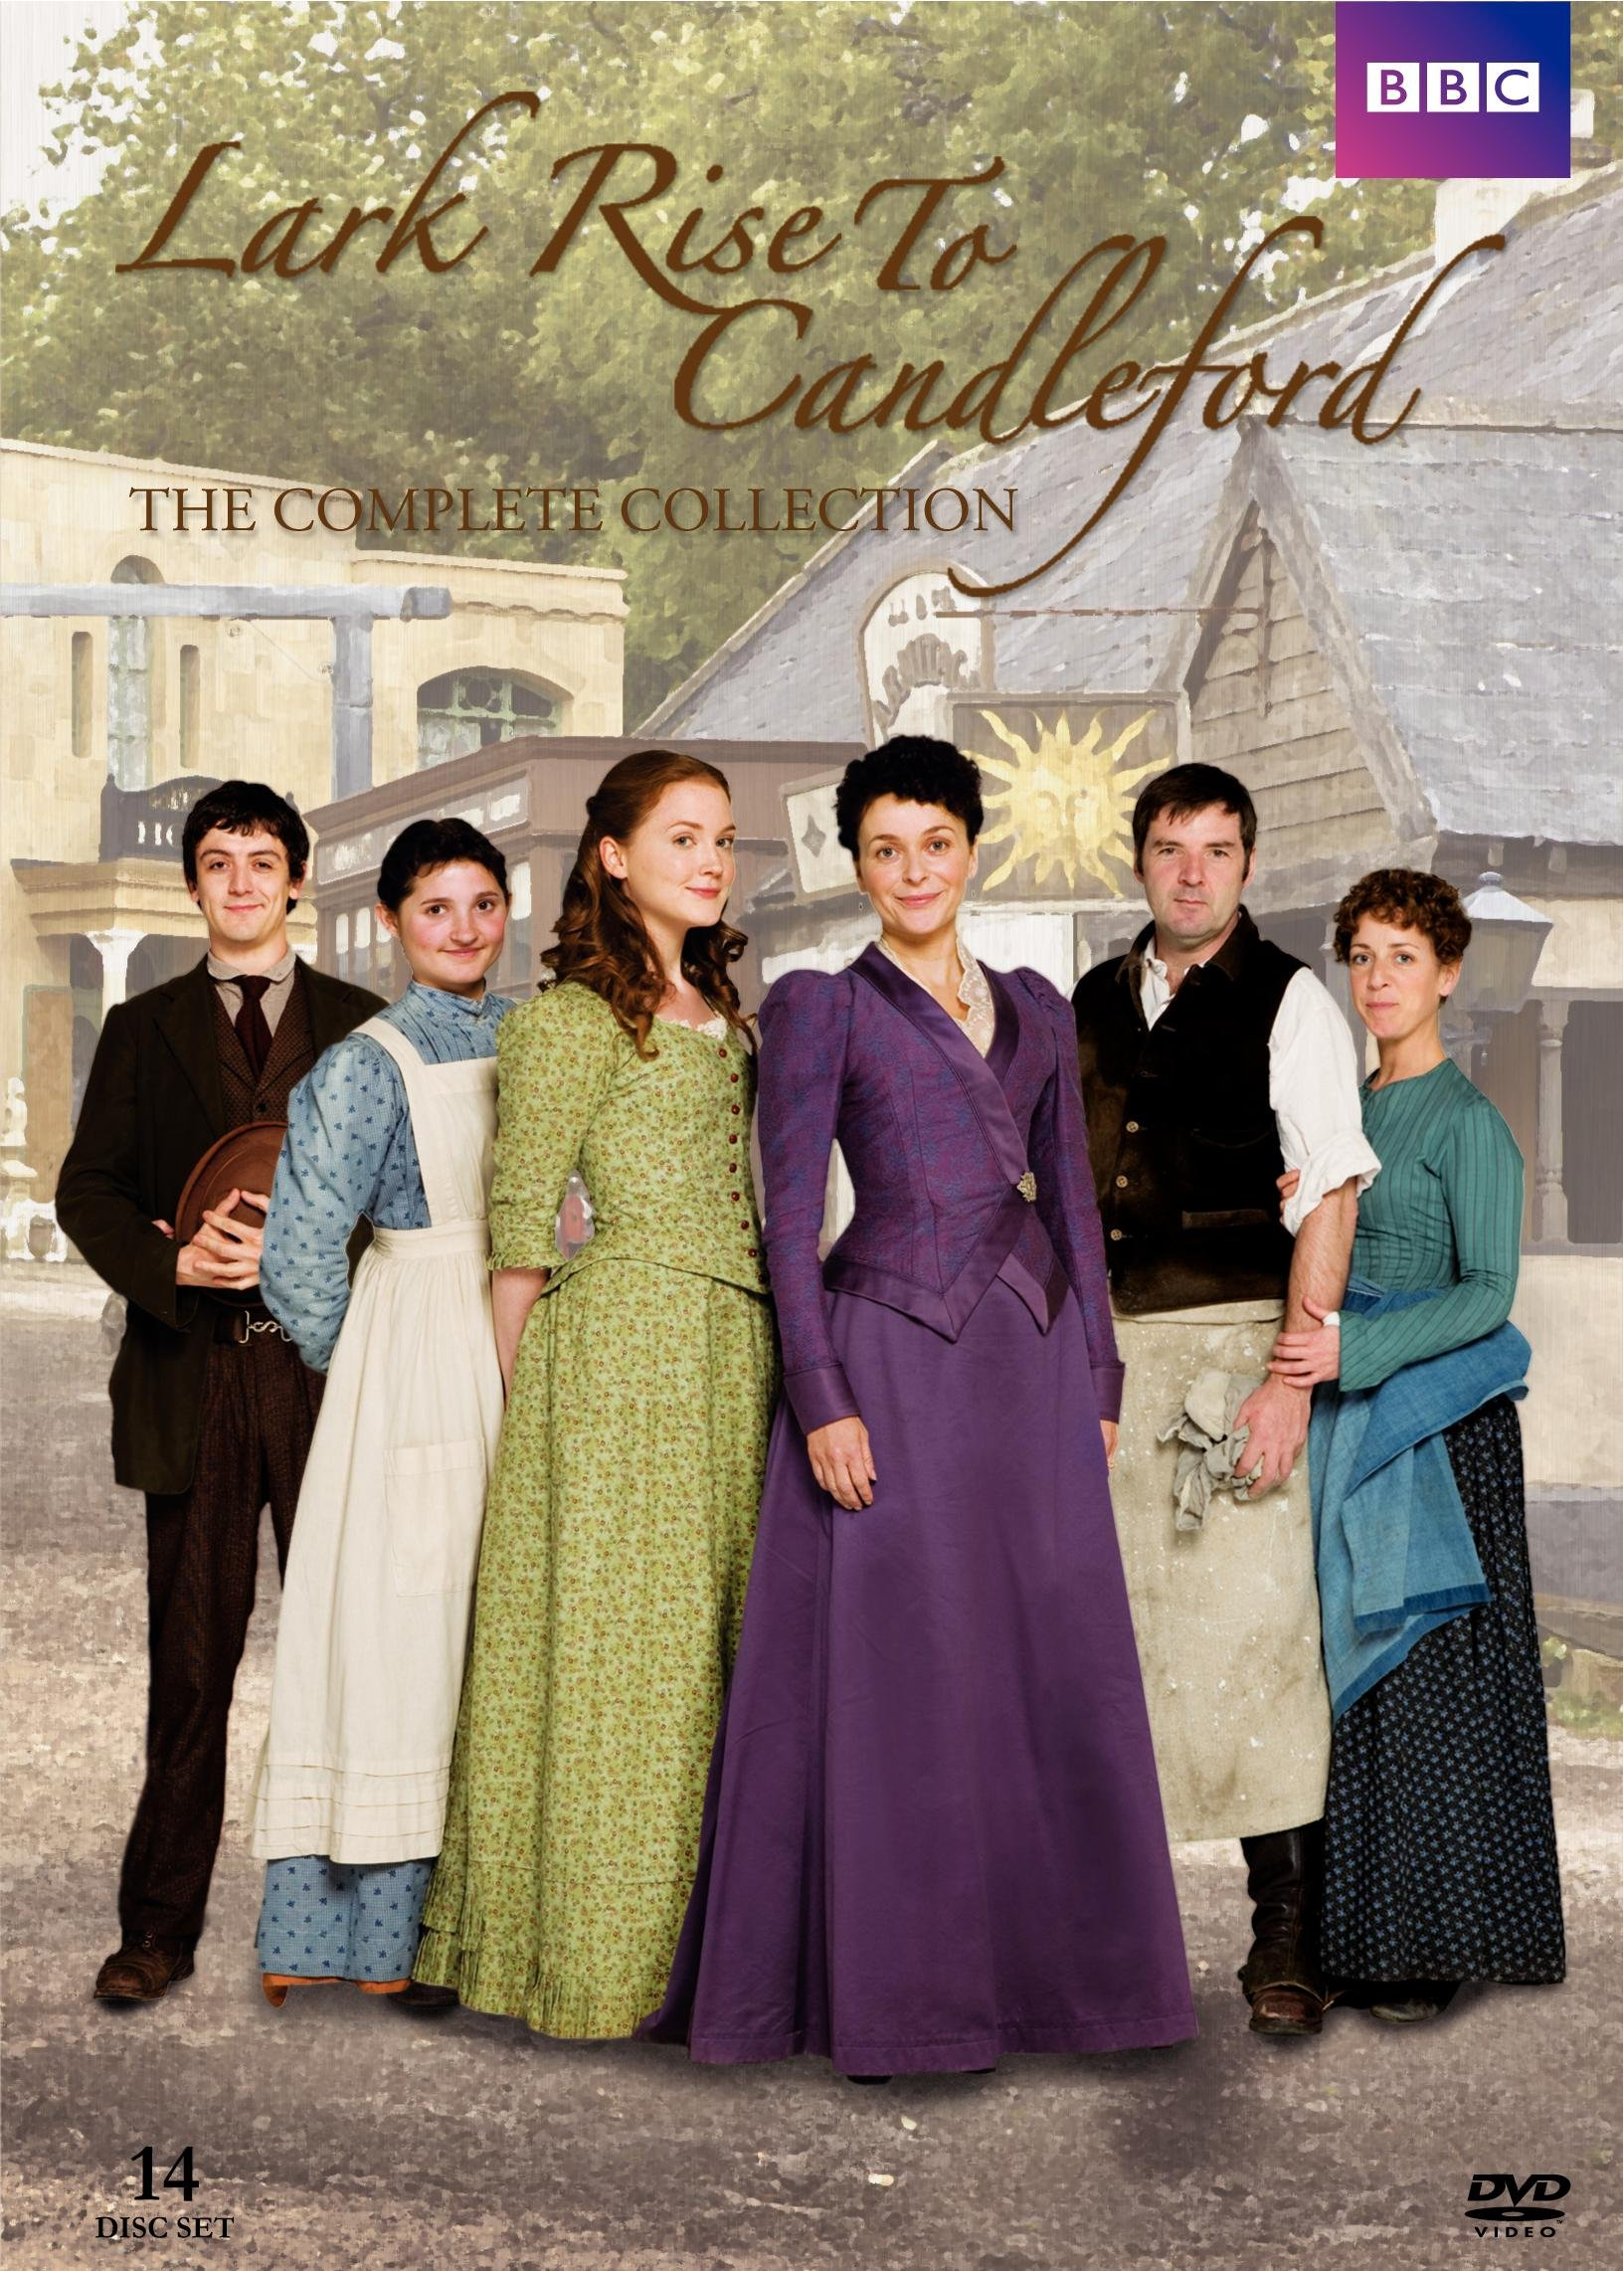 Lark Rise to Candleford: The Complete Collection by BBC Warner